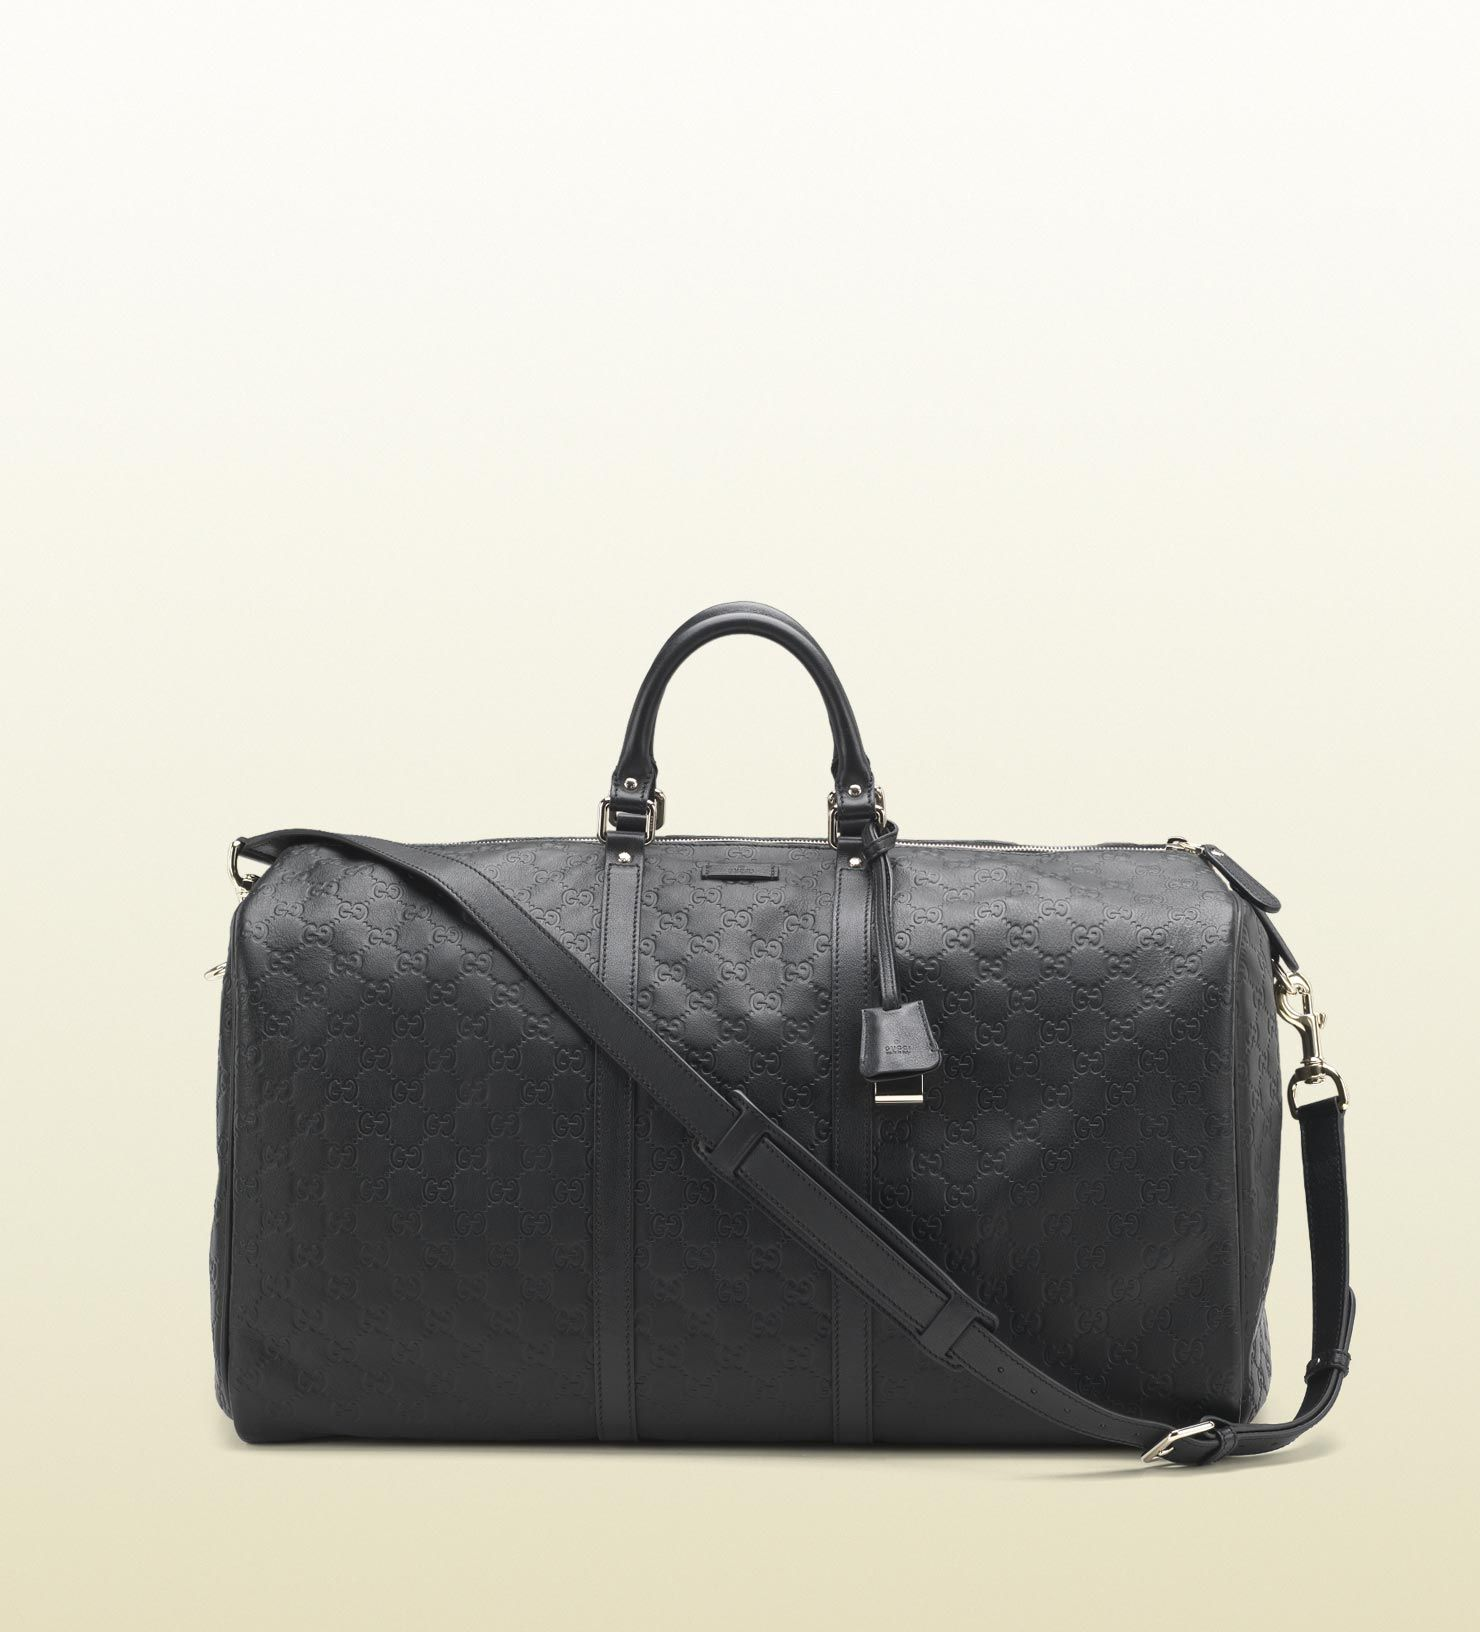 94f8473acaa0e1 Gucci Large black guccissima leather carry-on duffel bag | Clothing ...